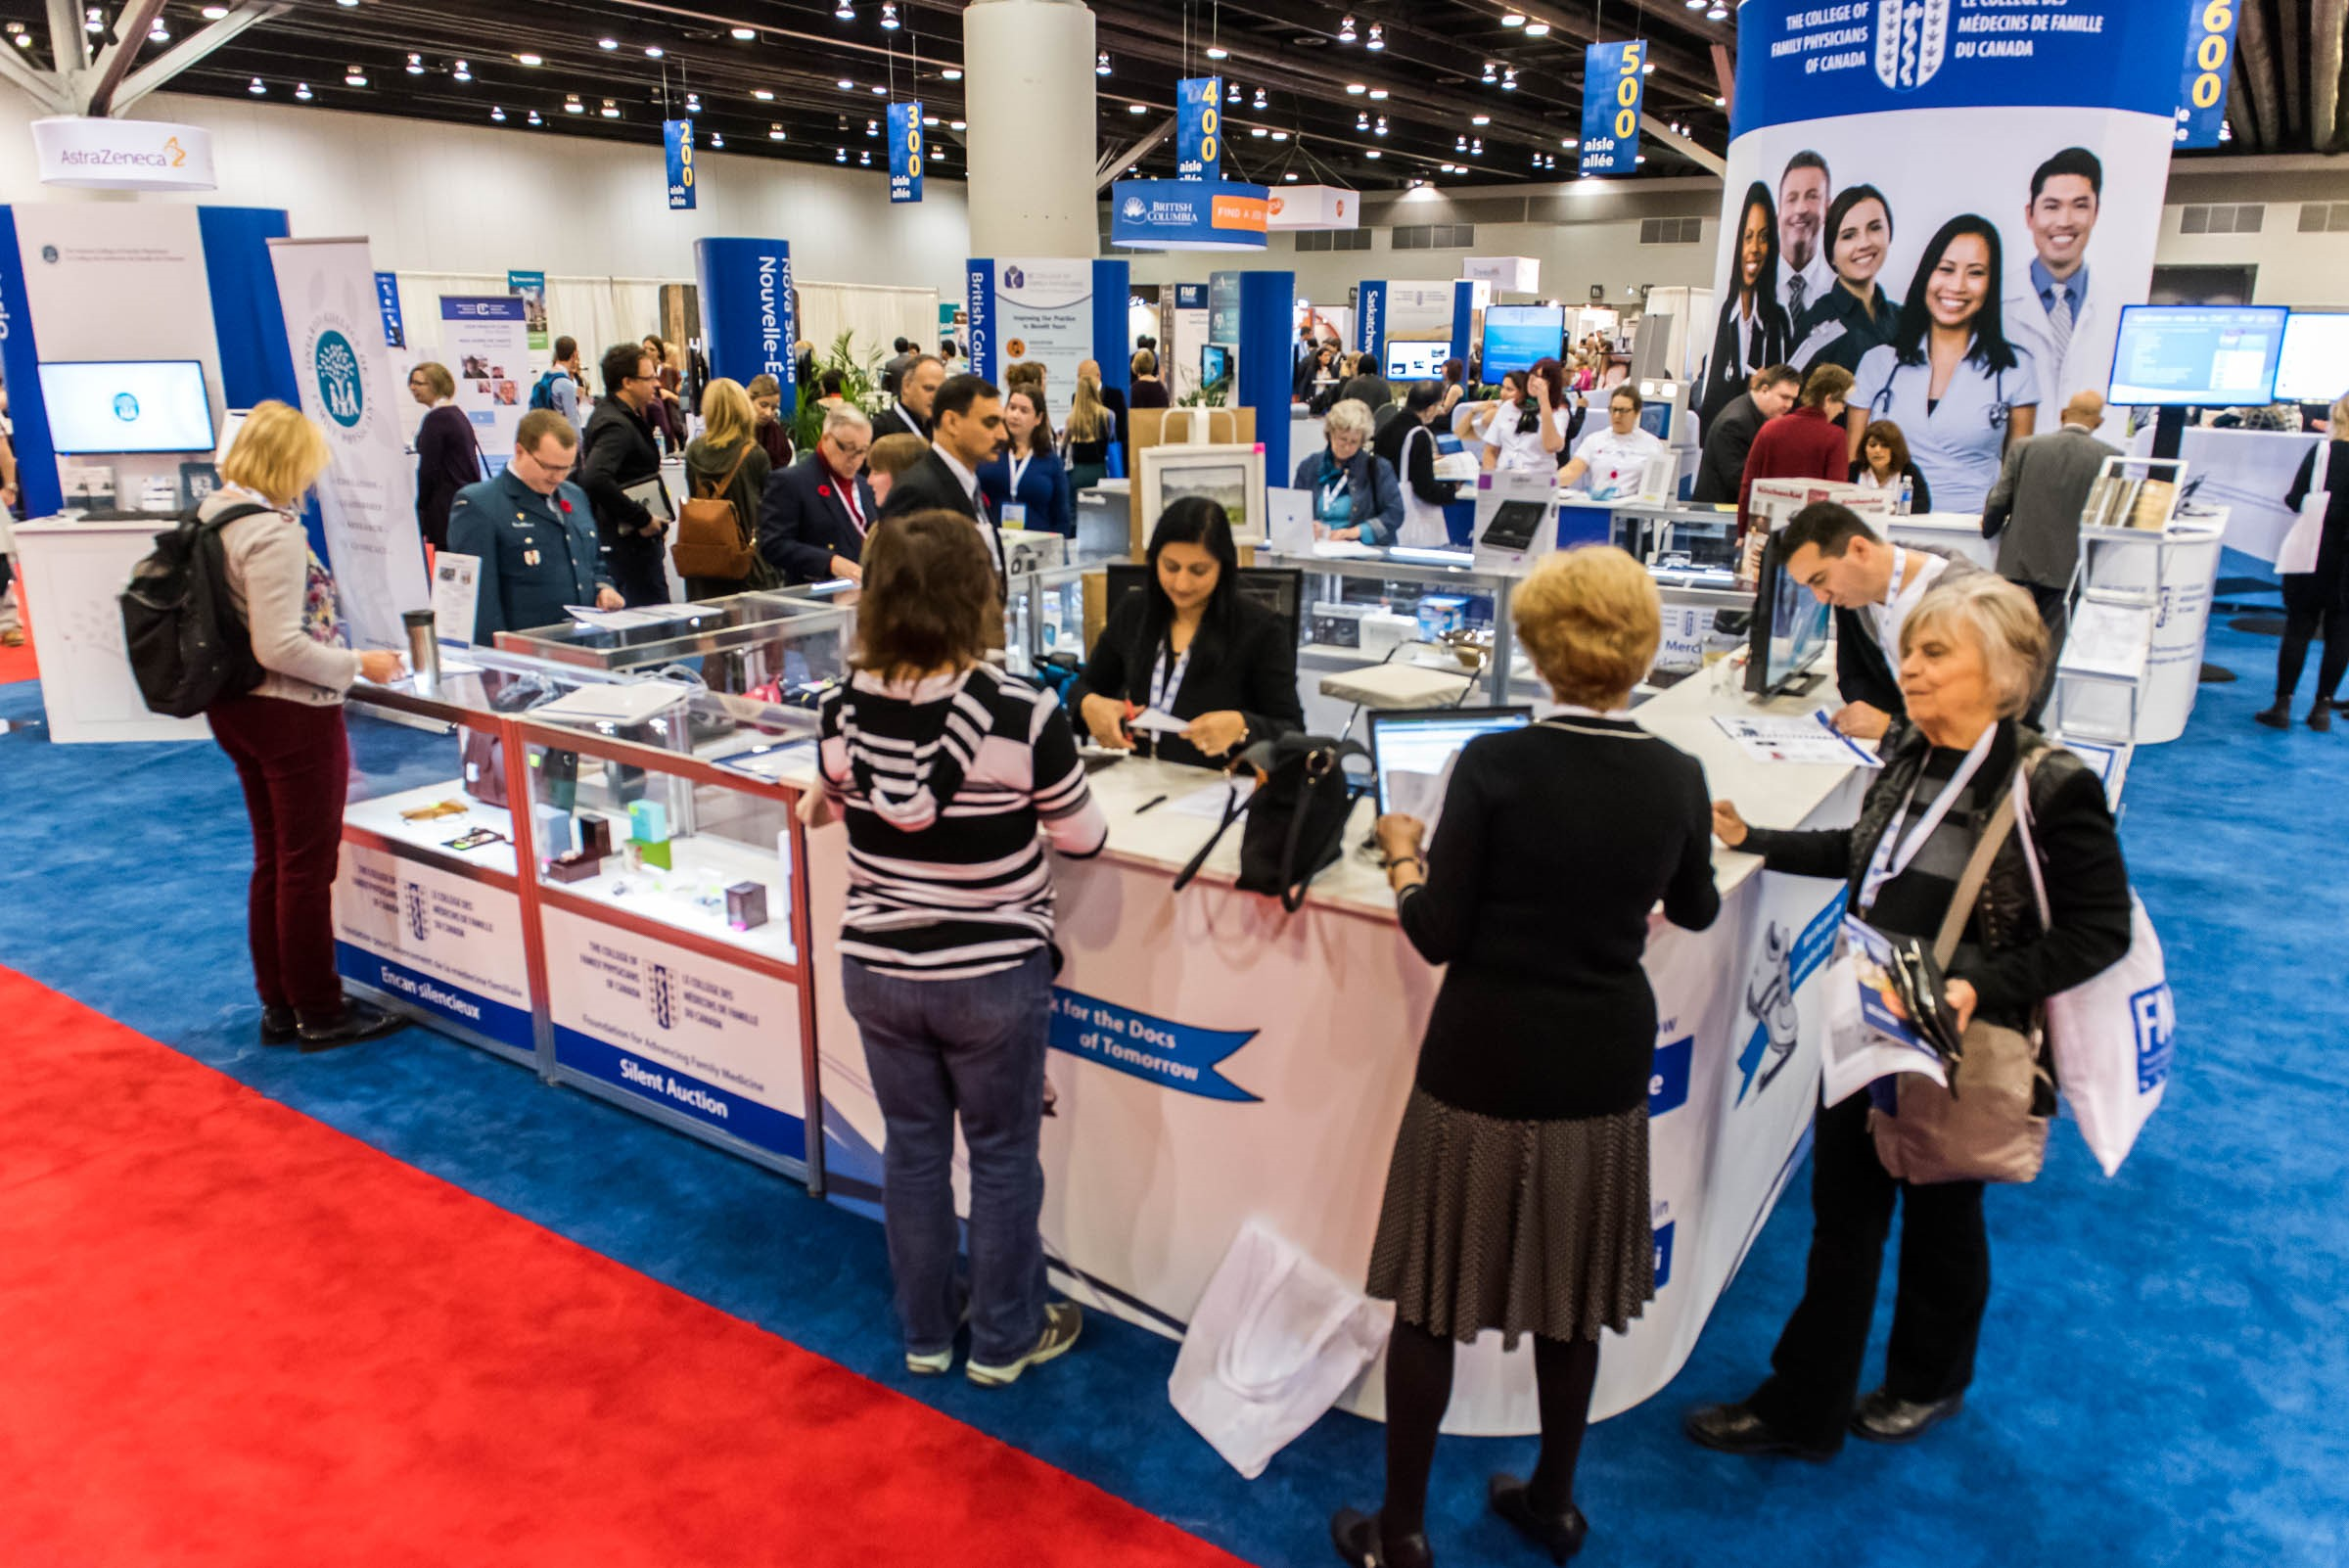 Image of attendees of a previous Family Medicine Forum in the Exhibit Hall